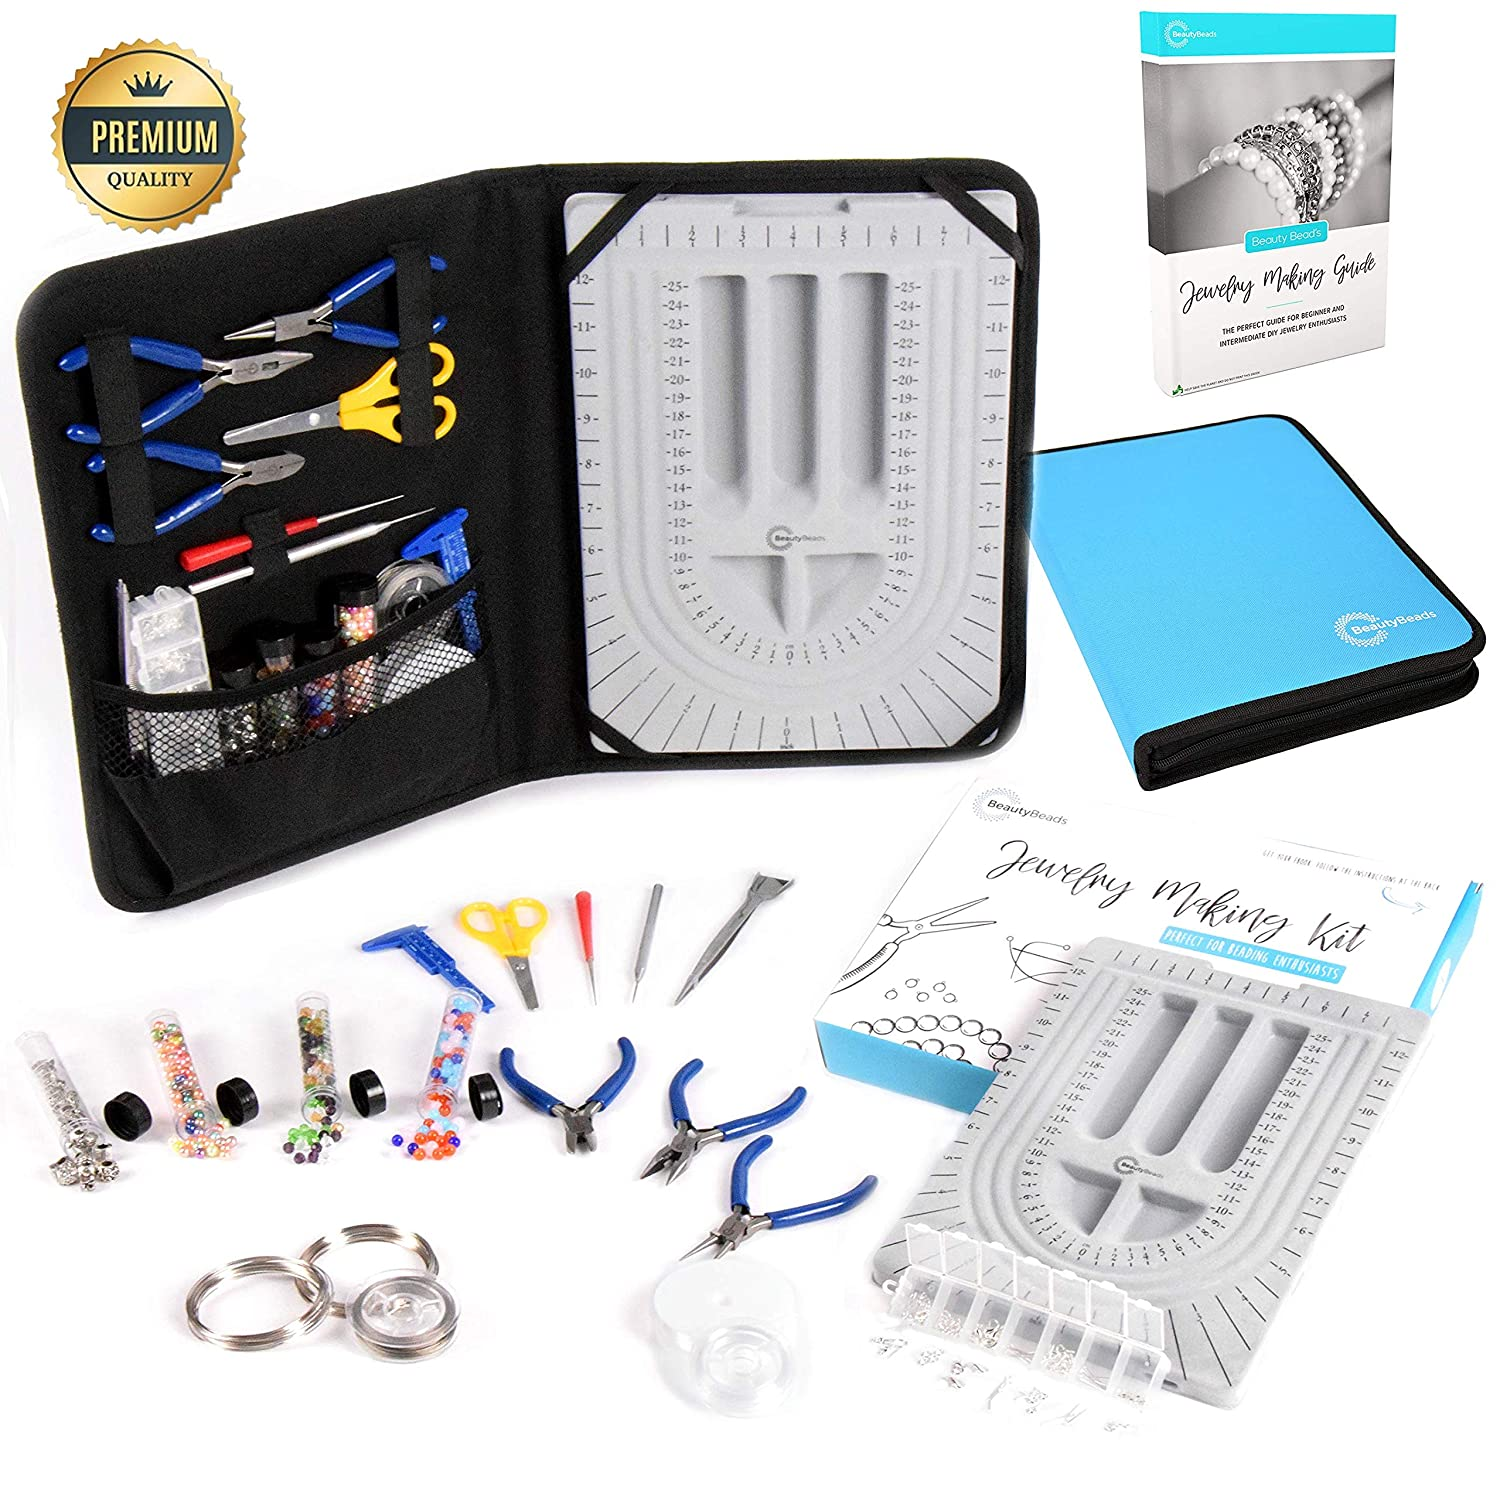 Jewelry Making Kit & Beading Supplies. +30pcs Tools & Accessories Set. Make/Repair Custom & Personalized Beading Designs. Bead Design Board & BeautyBeads Jewellery Making Guide Incl. Canvas Zipper Bag Qubeeco 4336835071